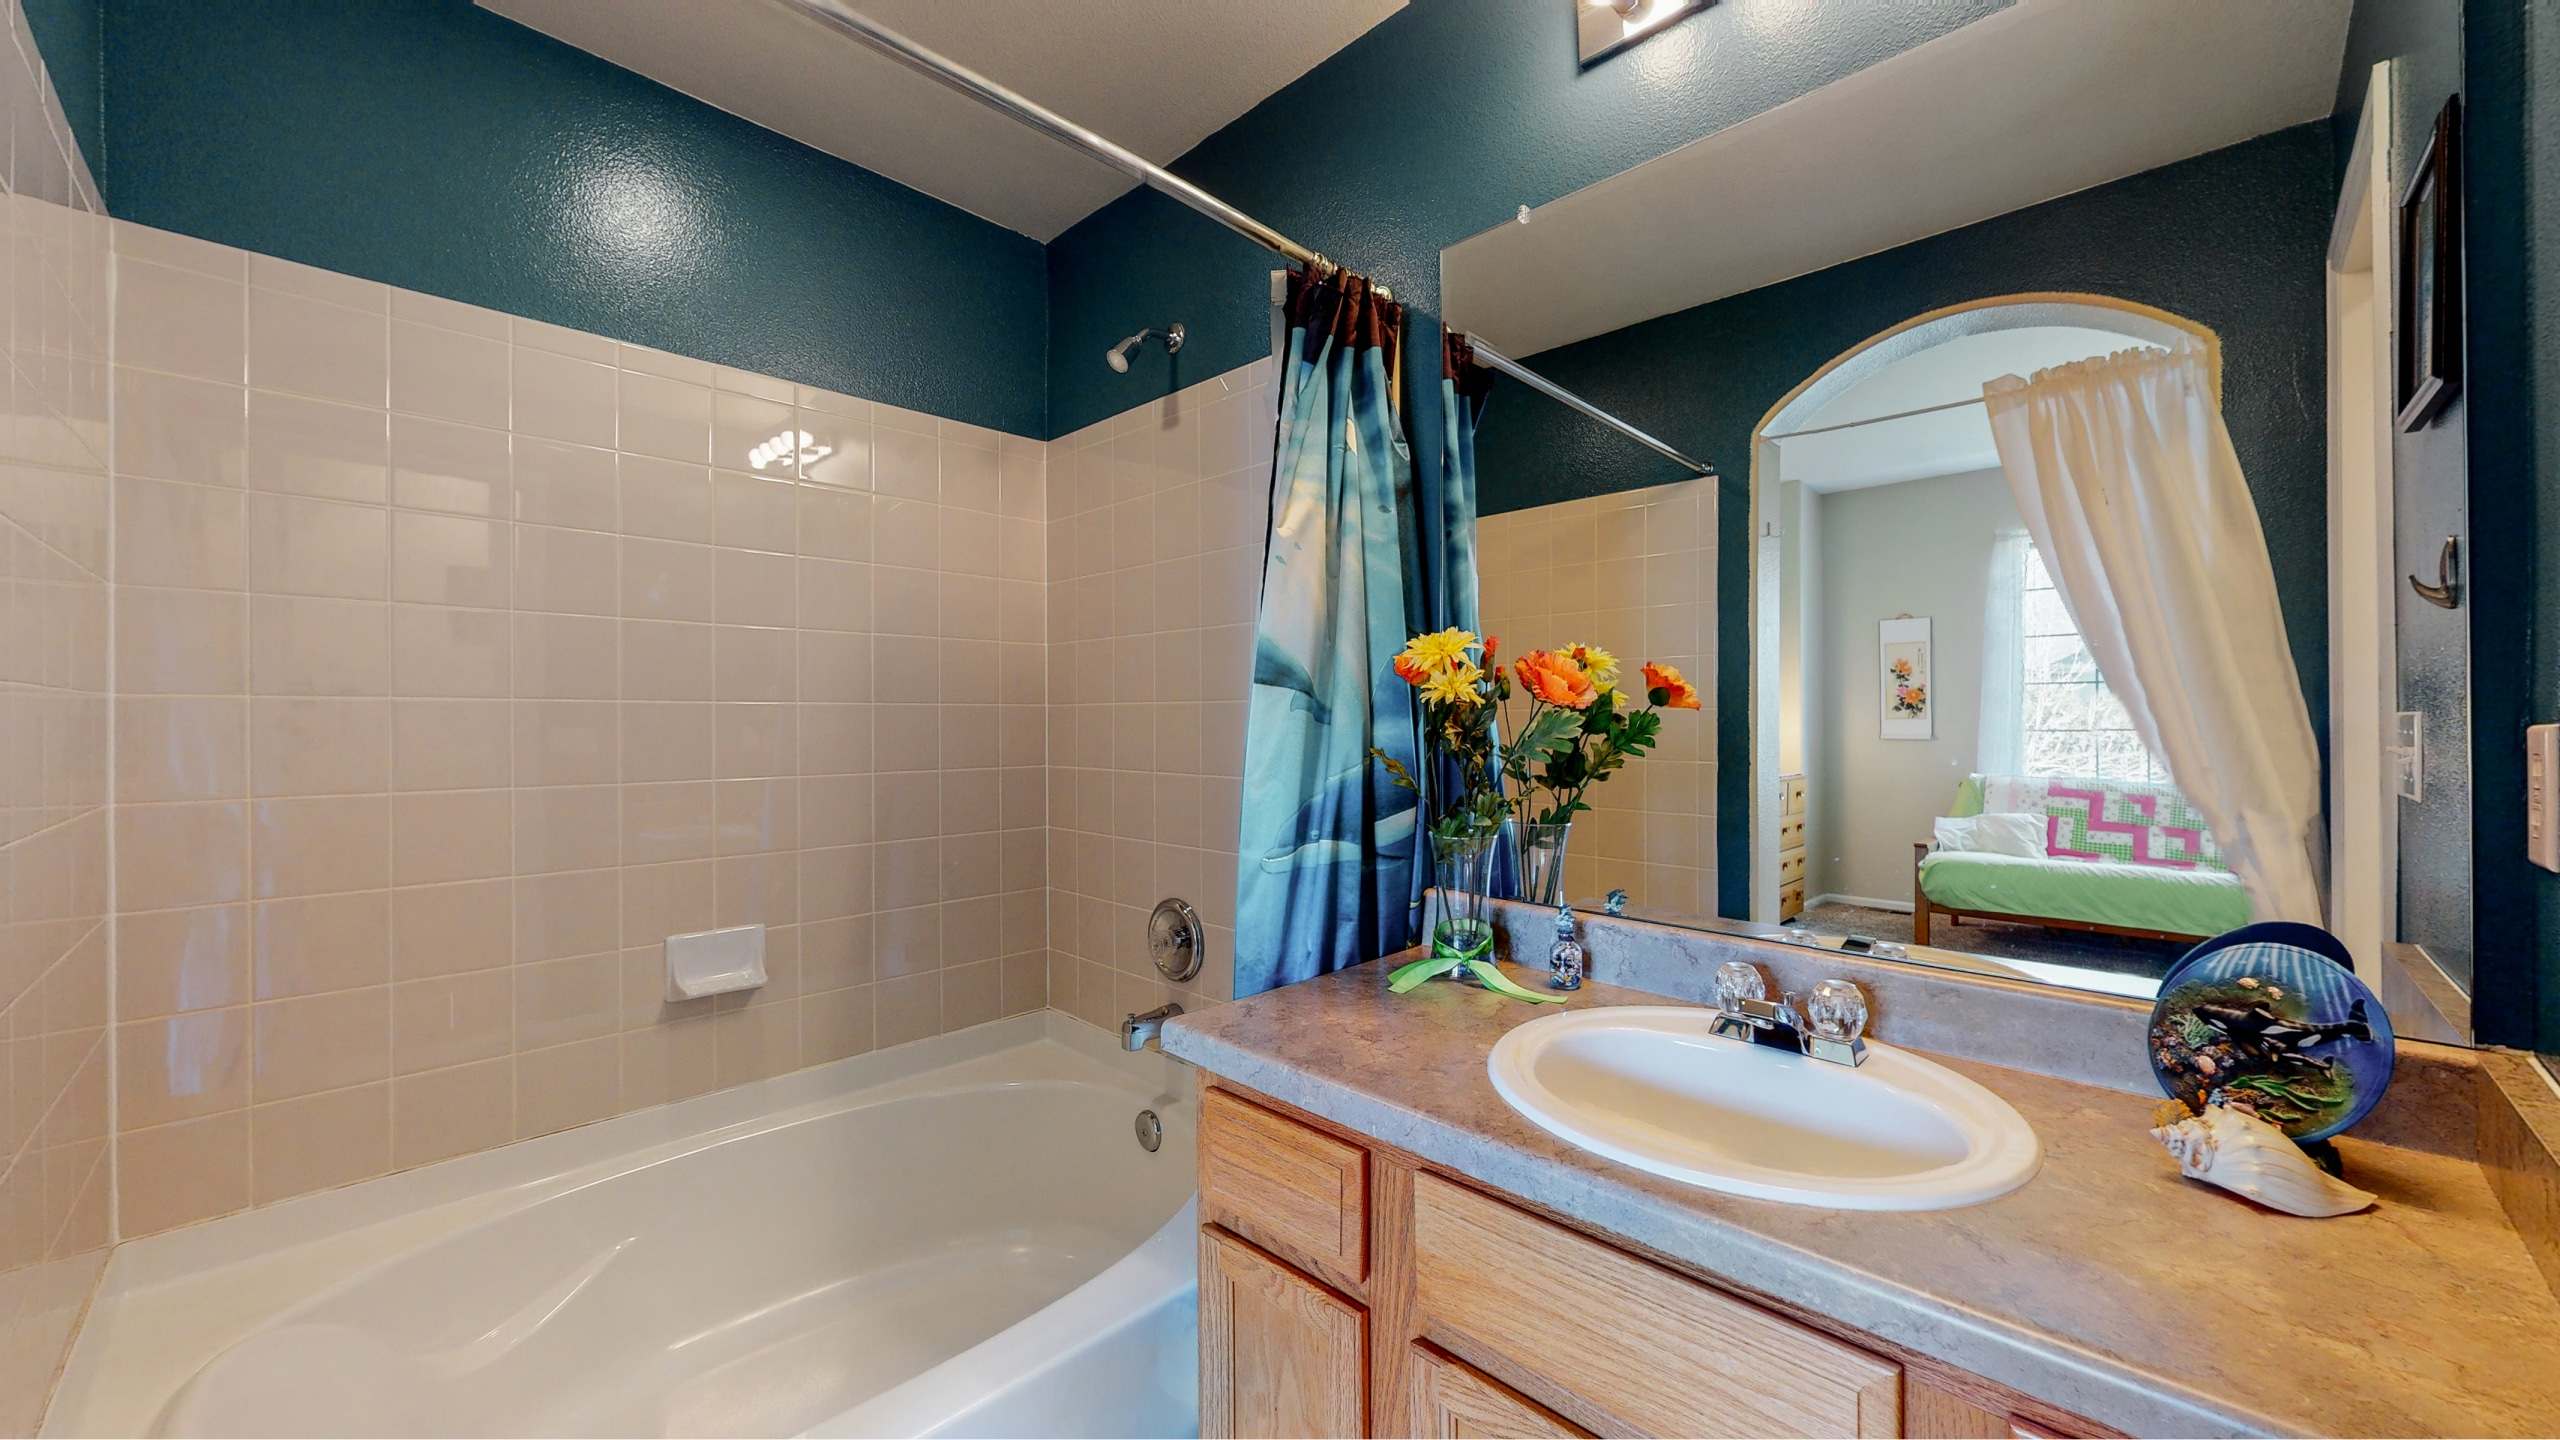 Extra Bedroom Private en Suite Bathroom with oversized tub